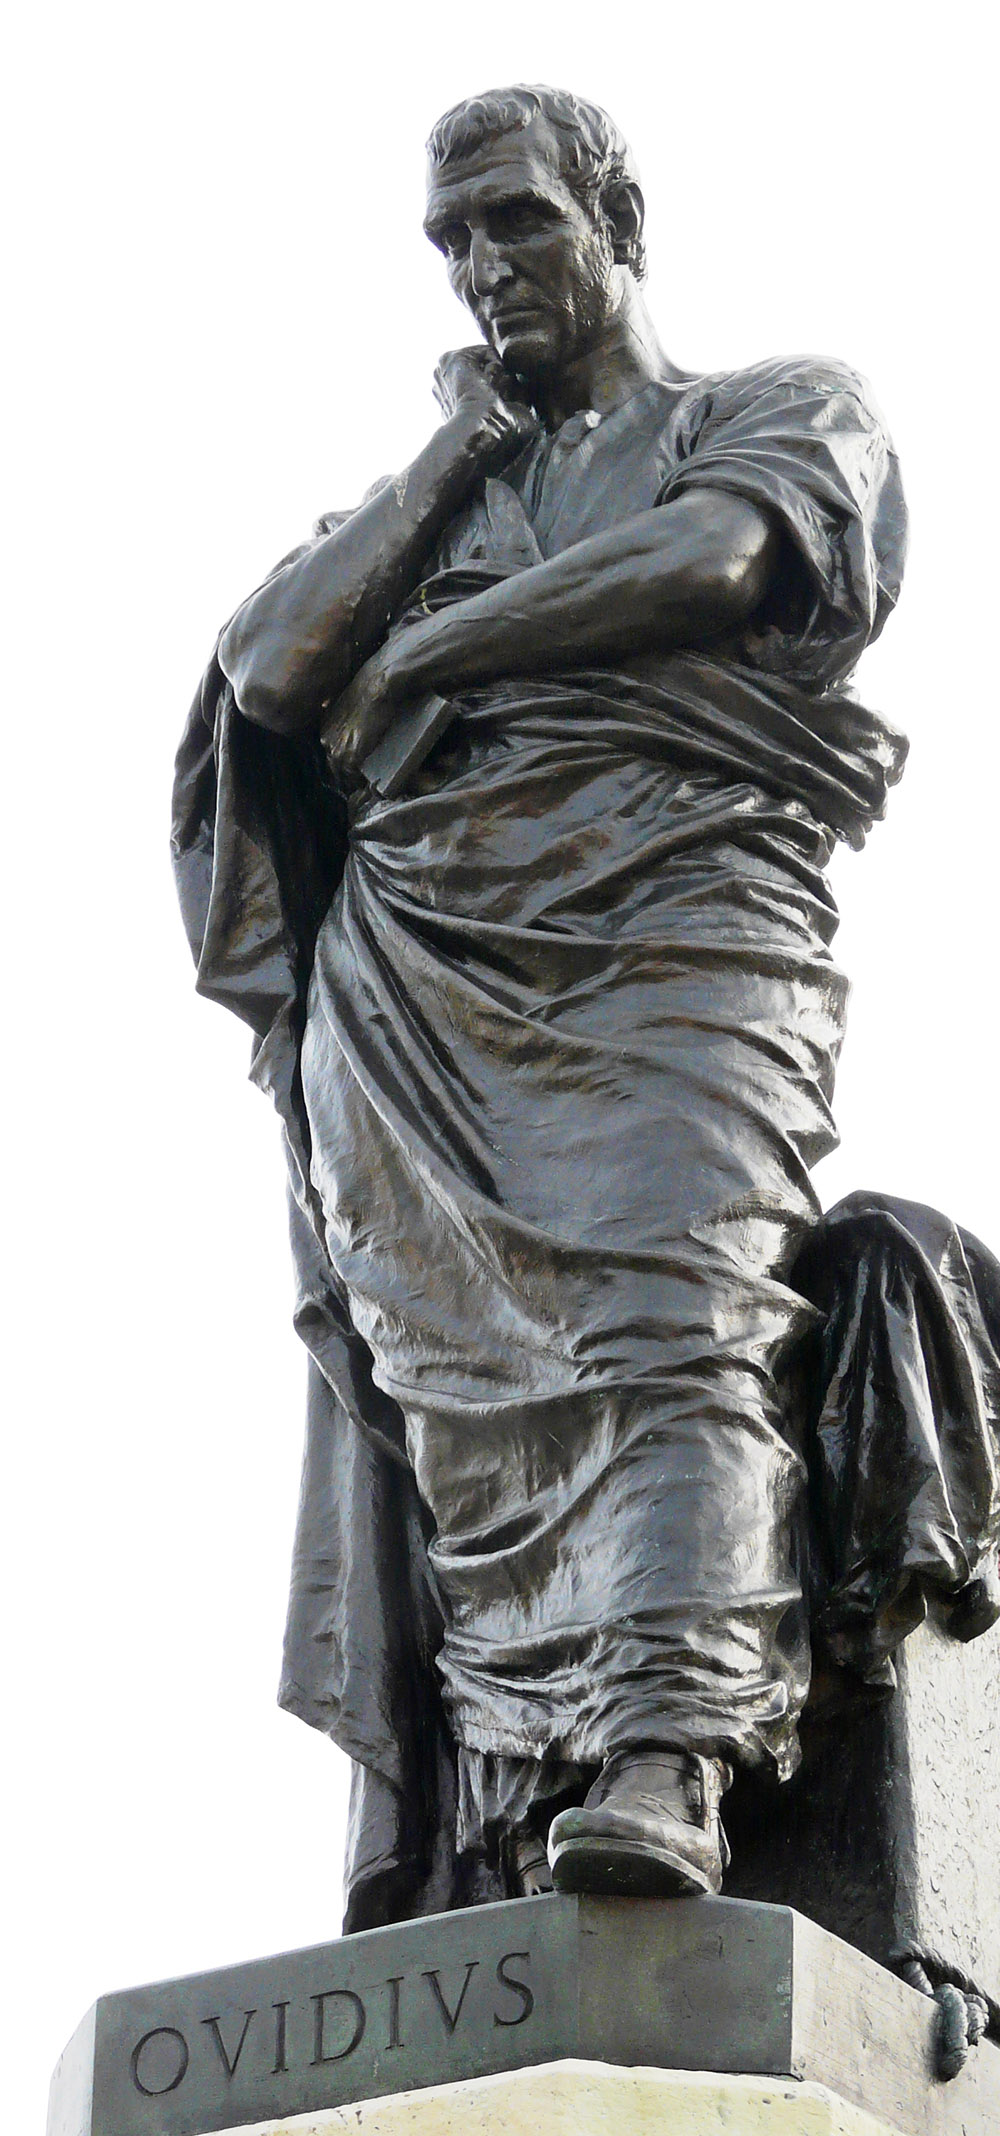 A statue of the Roman poet, Ovid.